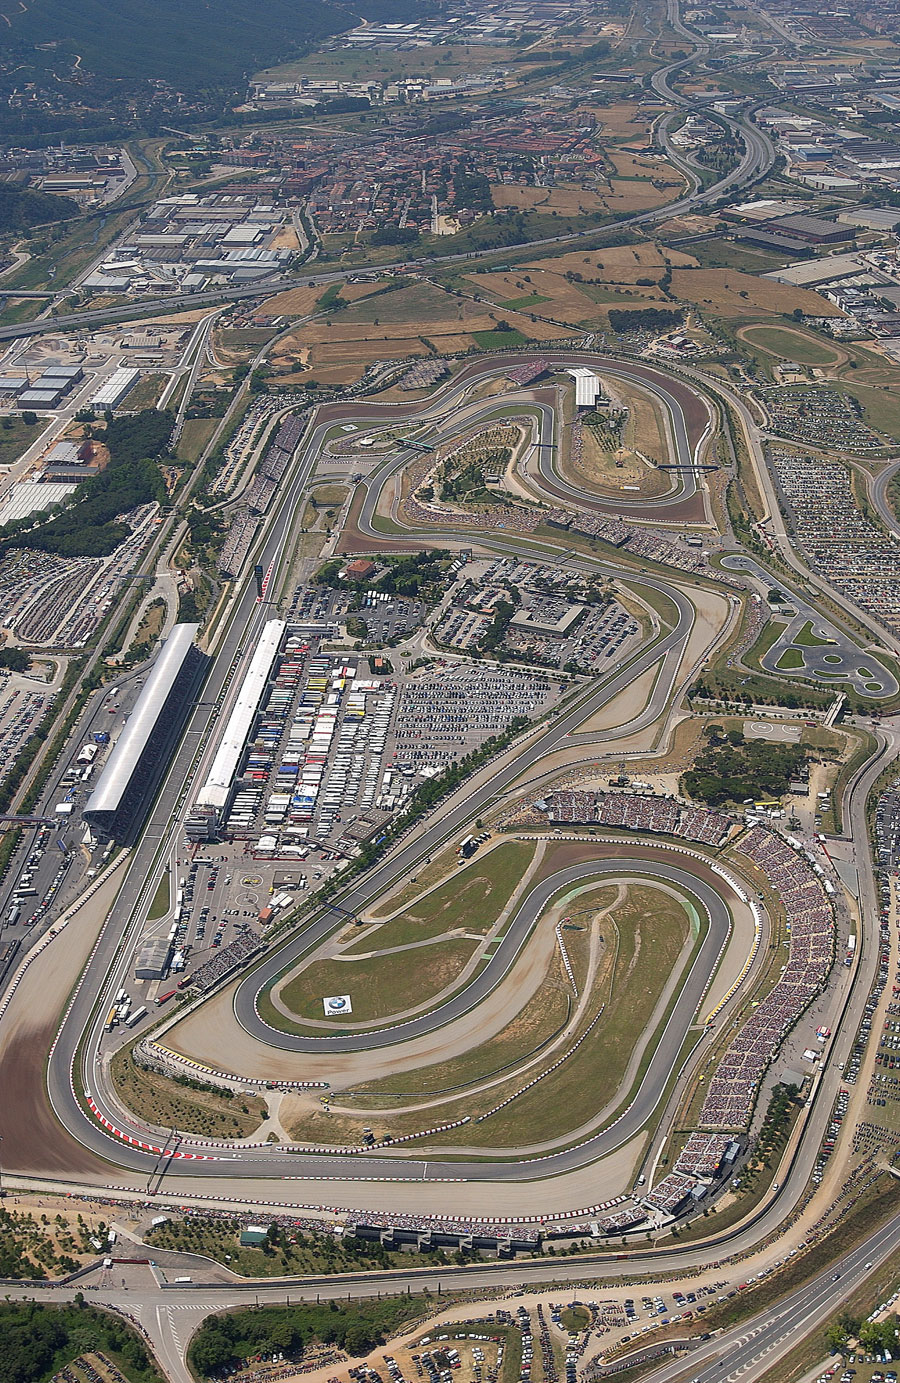 An aerial view of the Circuit de Catalunya on race day